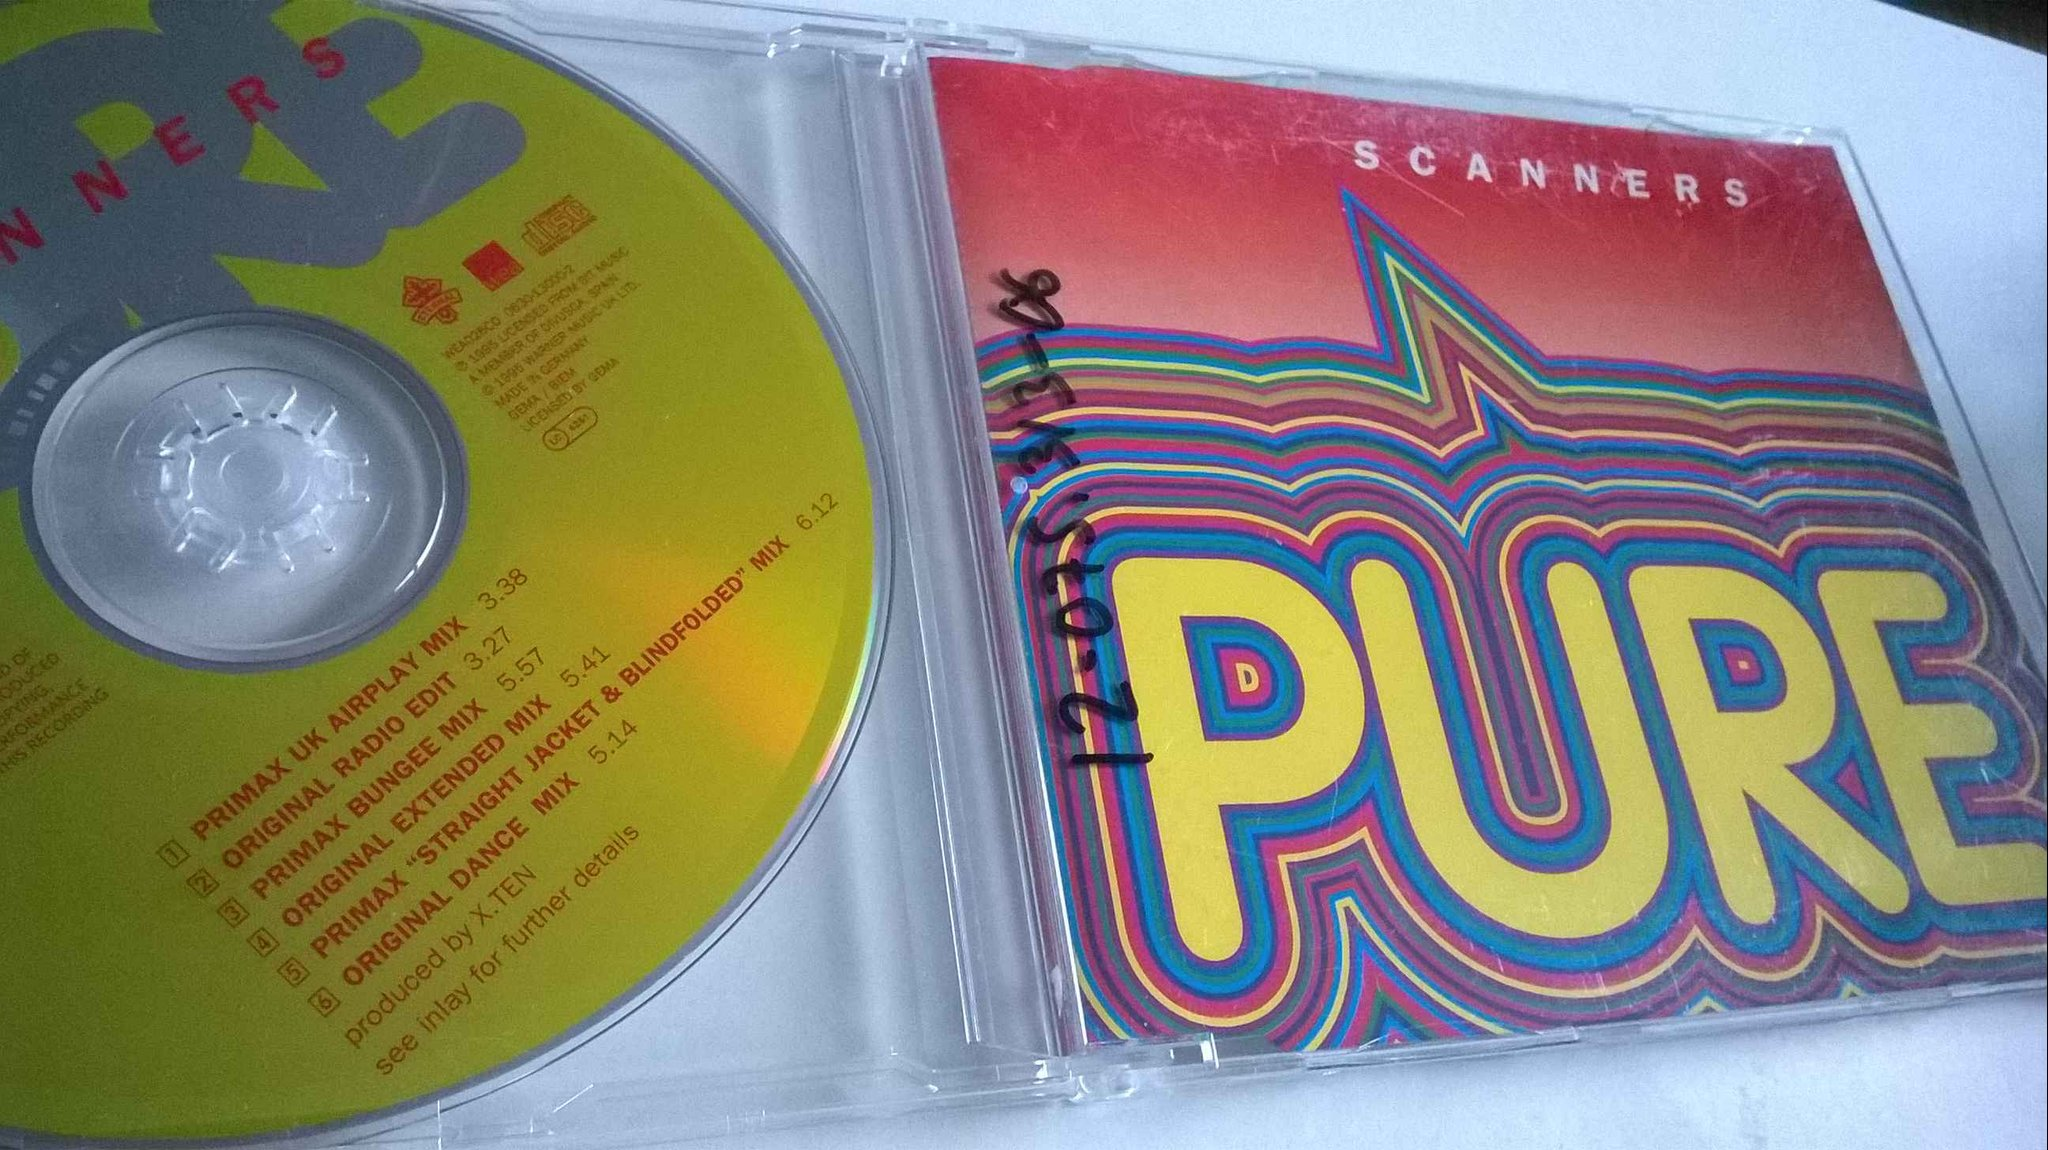 Scanners - Pure, CD, Maxi-Single, rare!